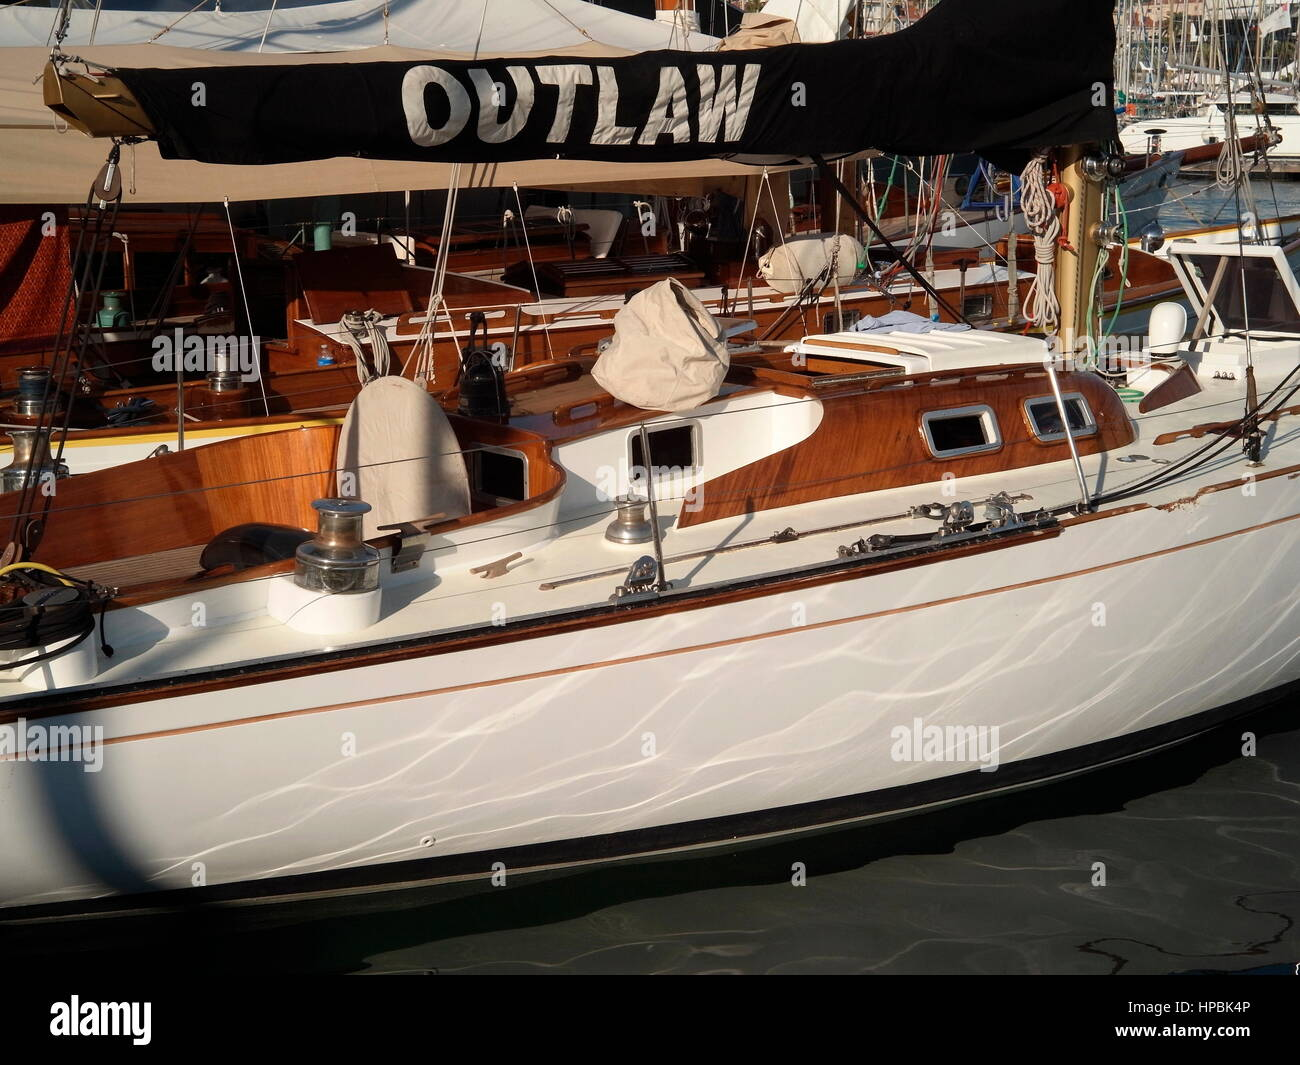 AJAXNETPHOTO. 4TH OCTOBER, 2016. CANNES, FRANCE. - RACE YACHT - THE YACHT OUTLAW DESIGNED BY ILLINGWORTH AND PRIMROSE - Stock Image